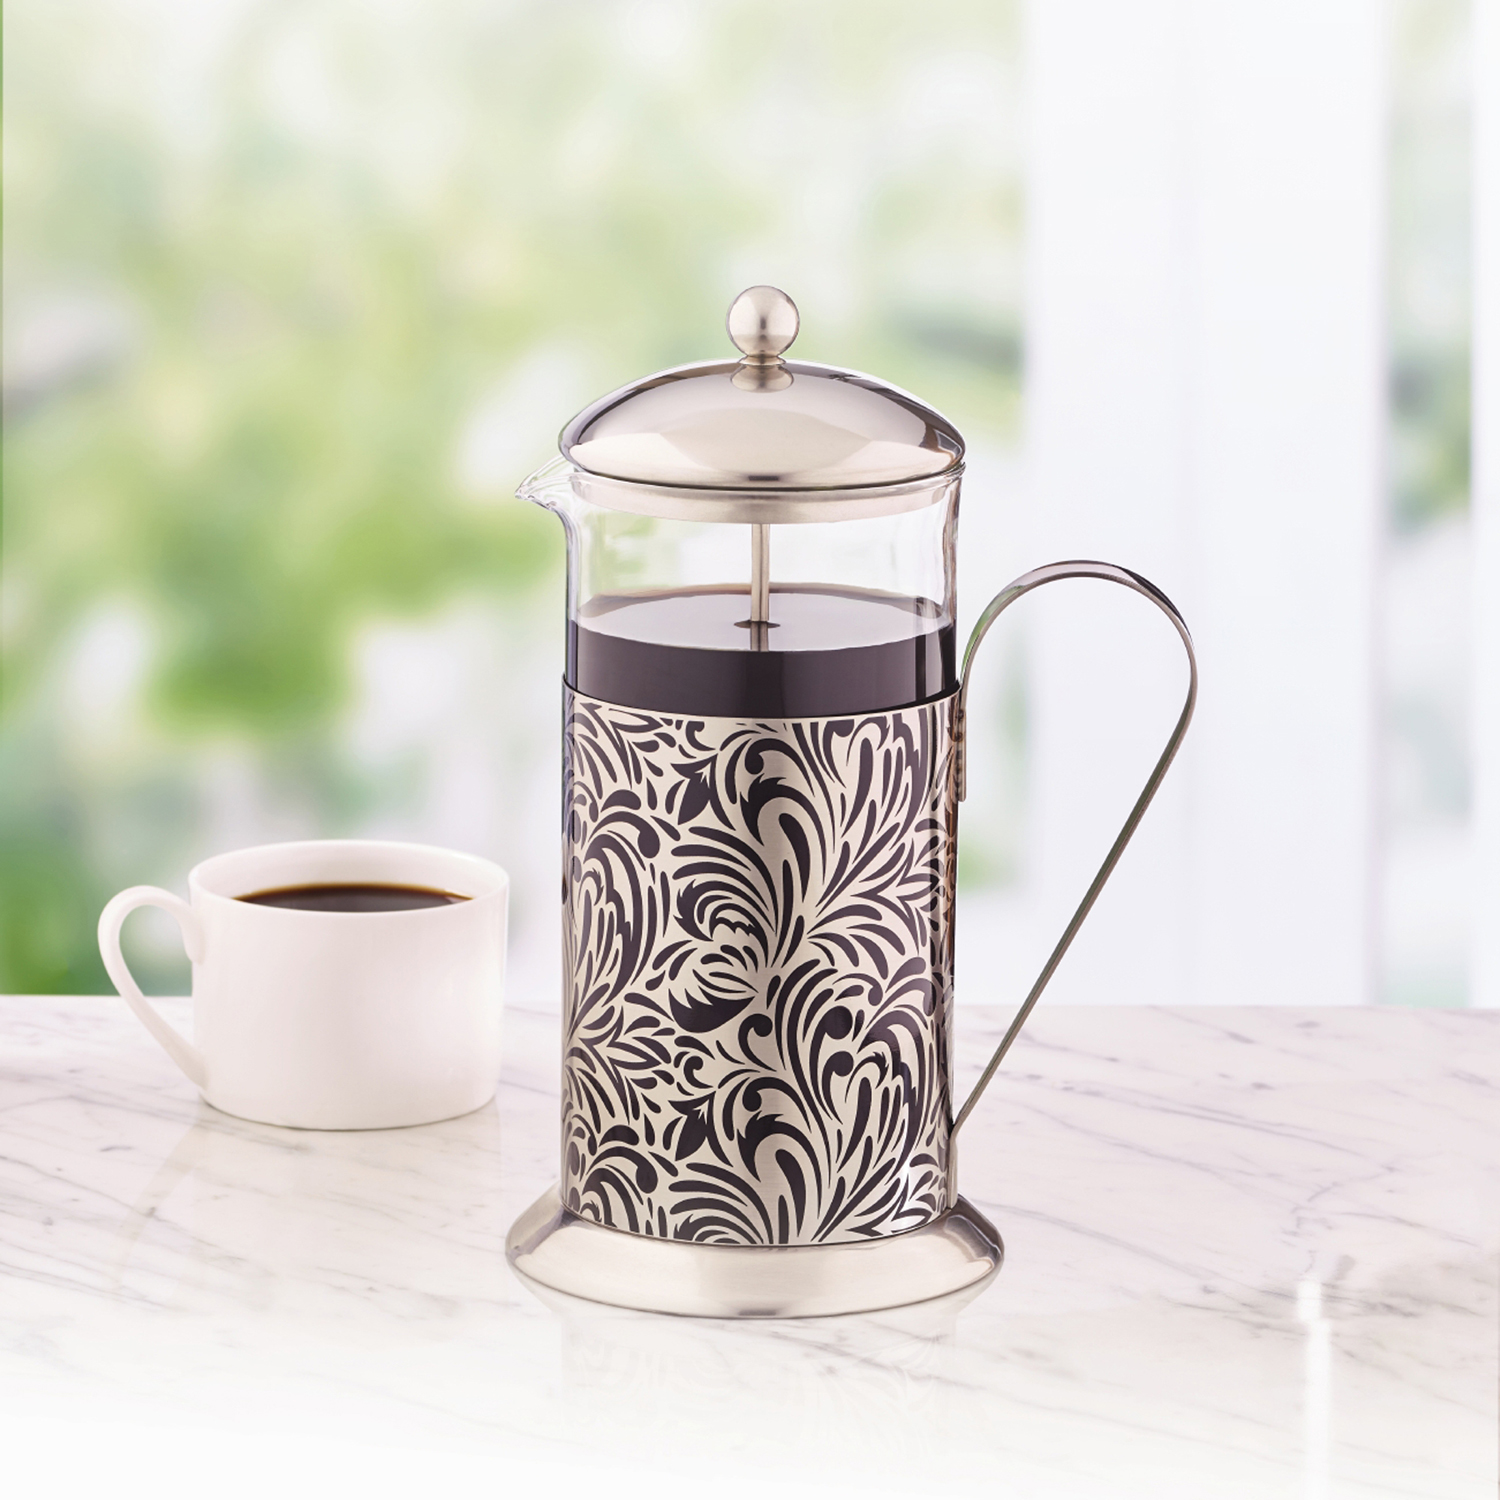 La Cafetiere Floral 8 Cup French Press Non Electric Coffee Maker